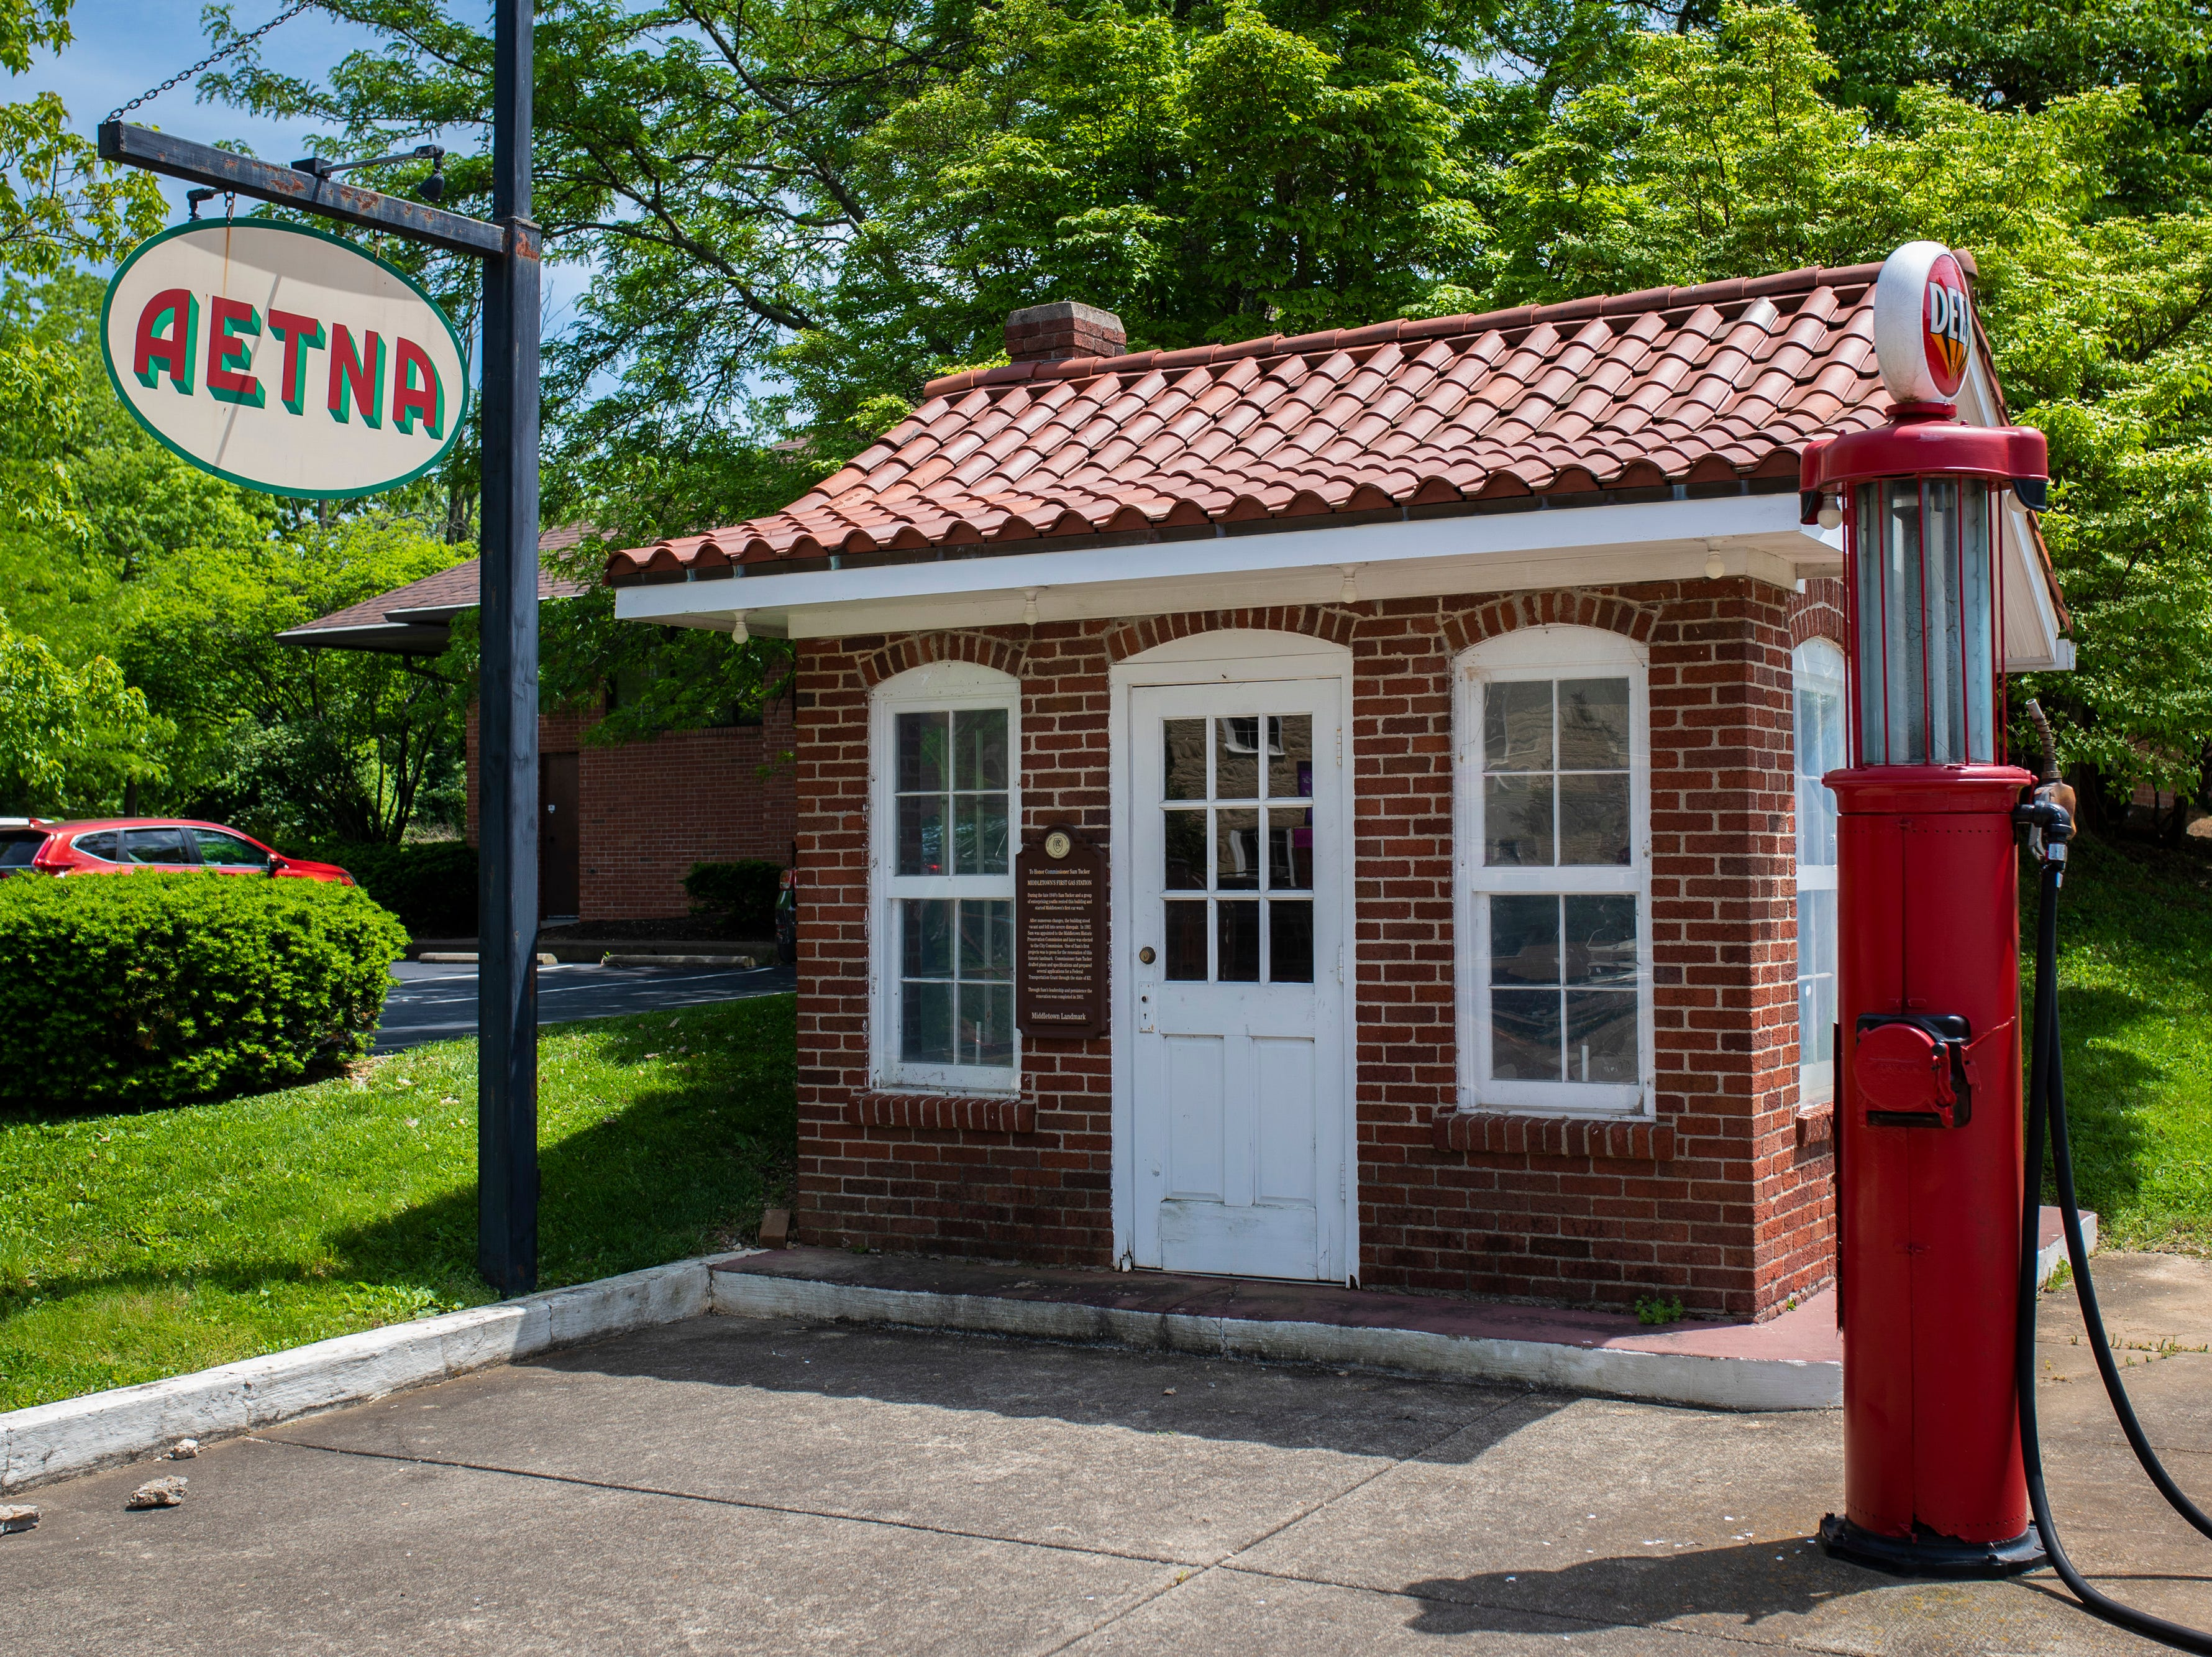 The first gas station is still maintained in the Middletown neighborhood. May 8, 2019